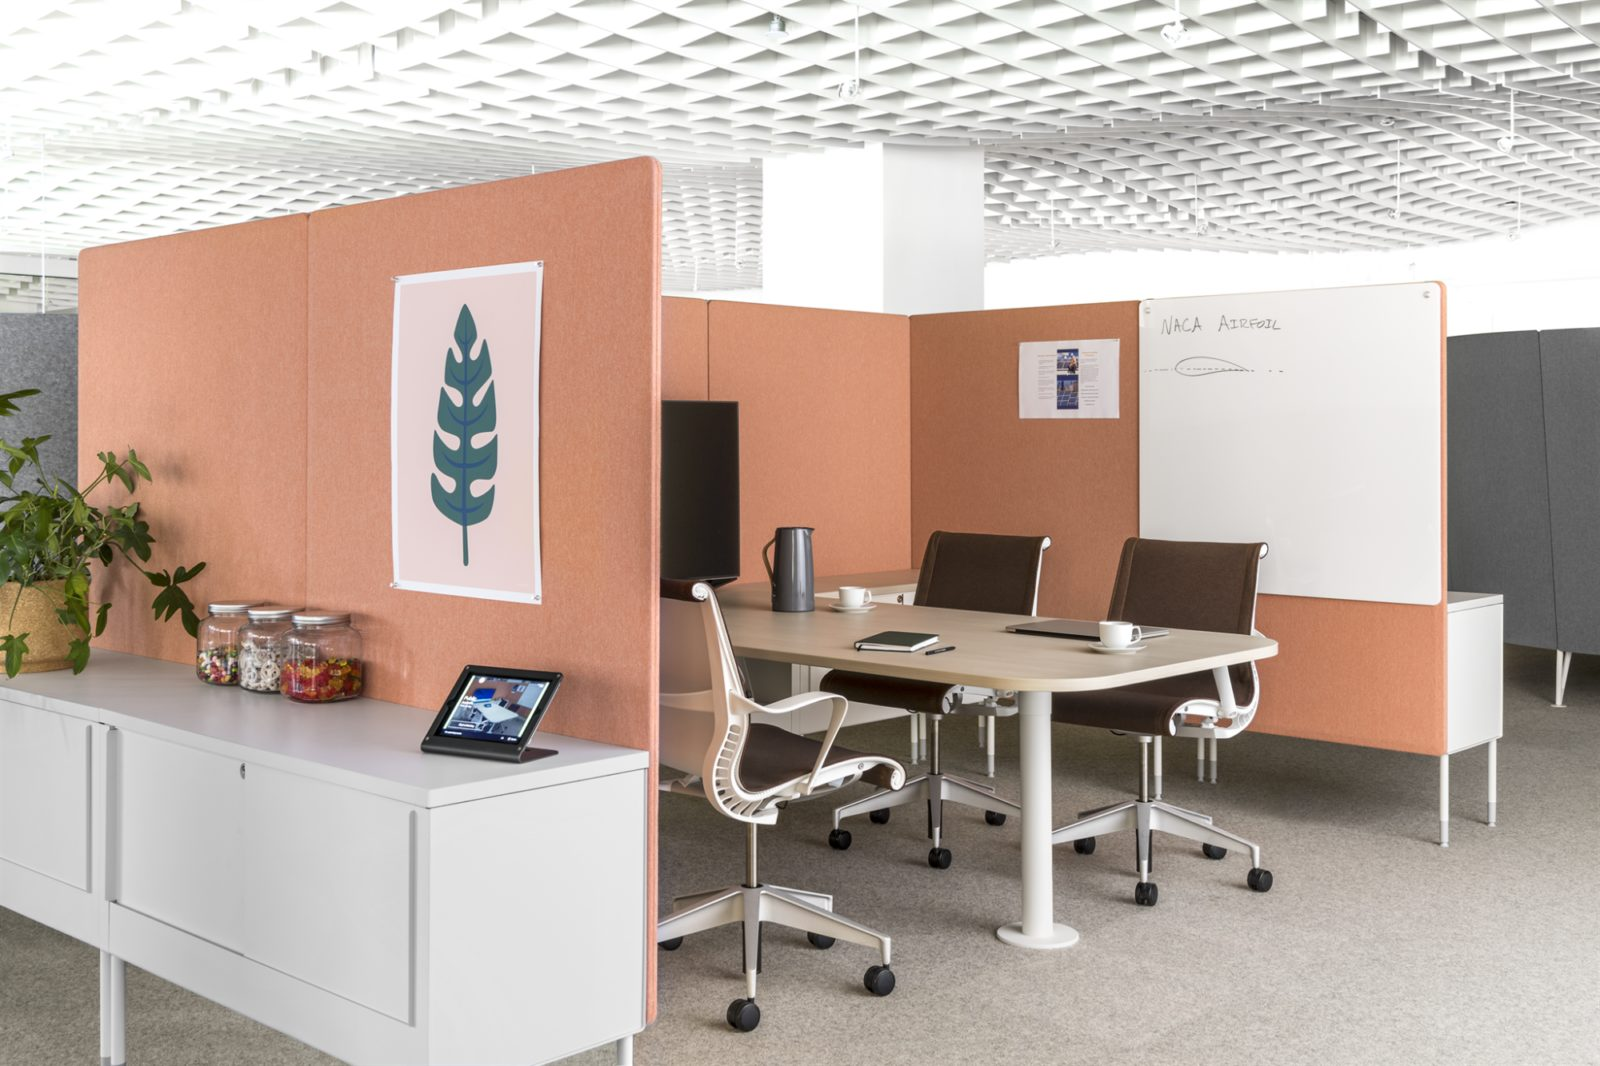 Collaborative office furniture small meeting space